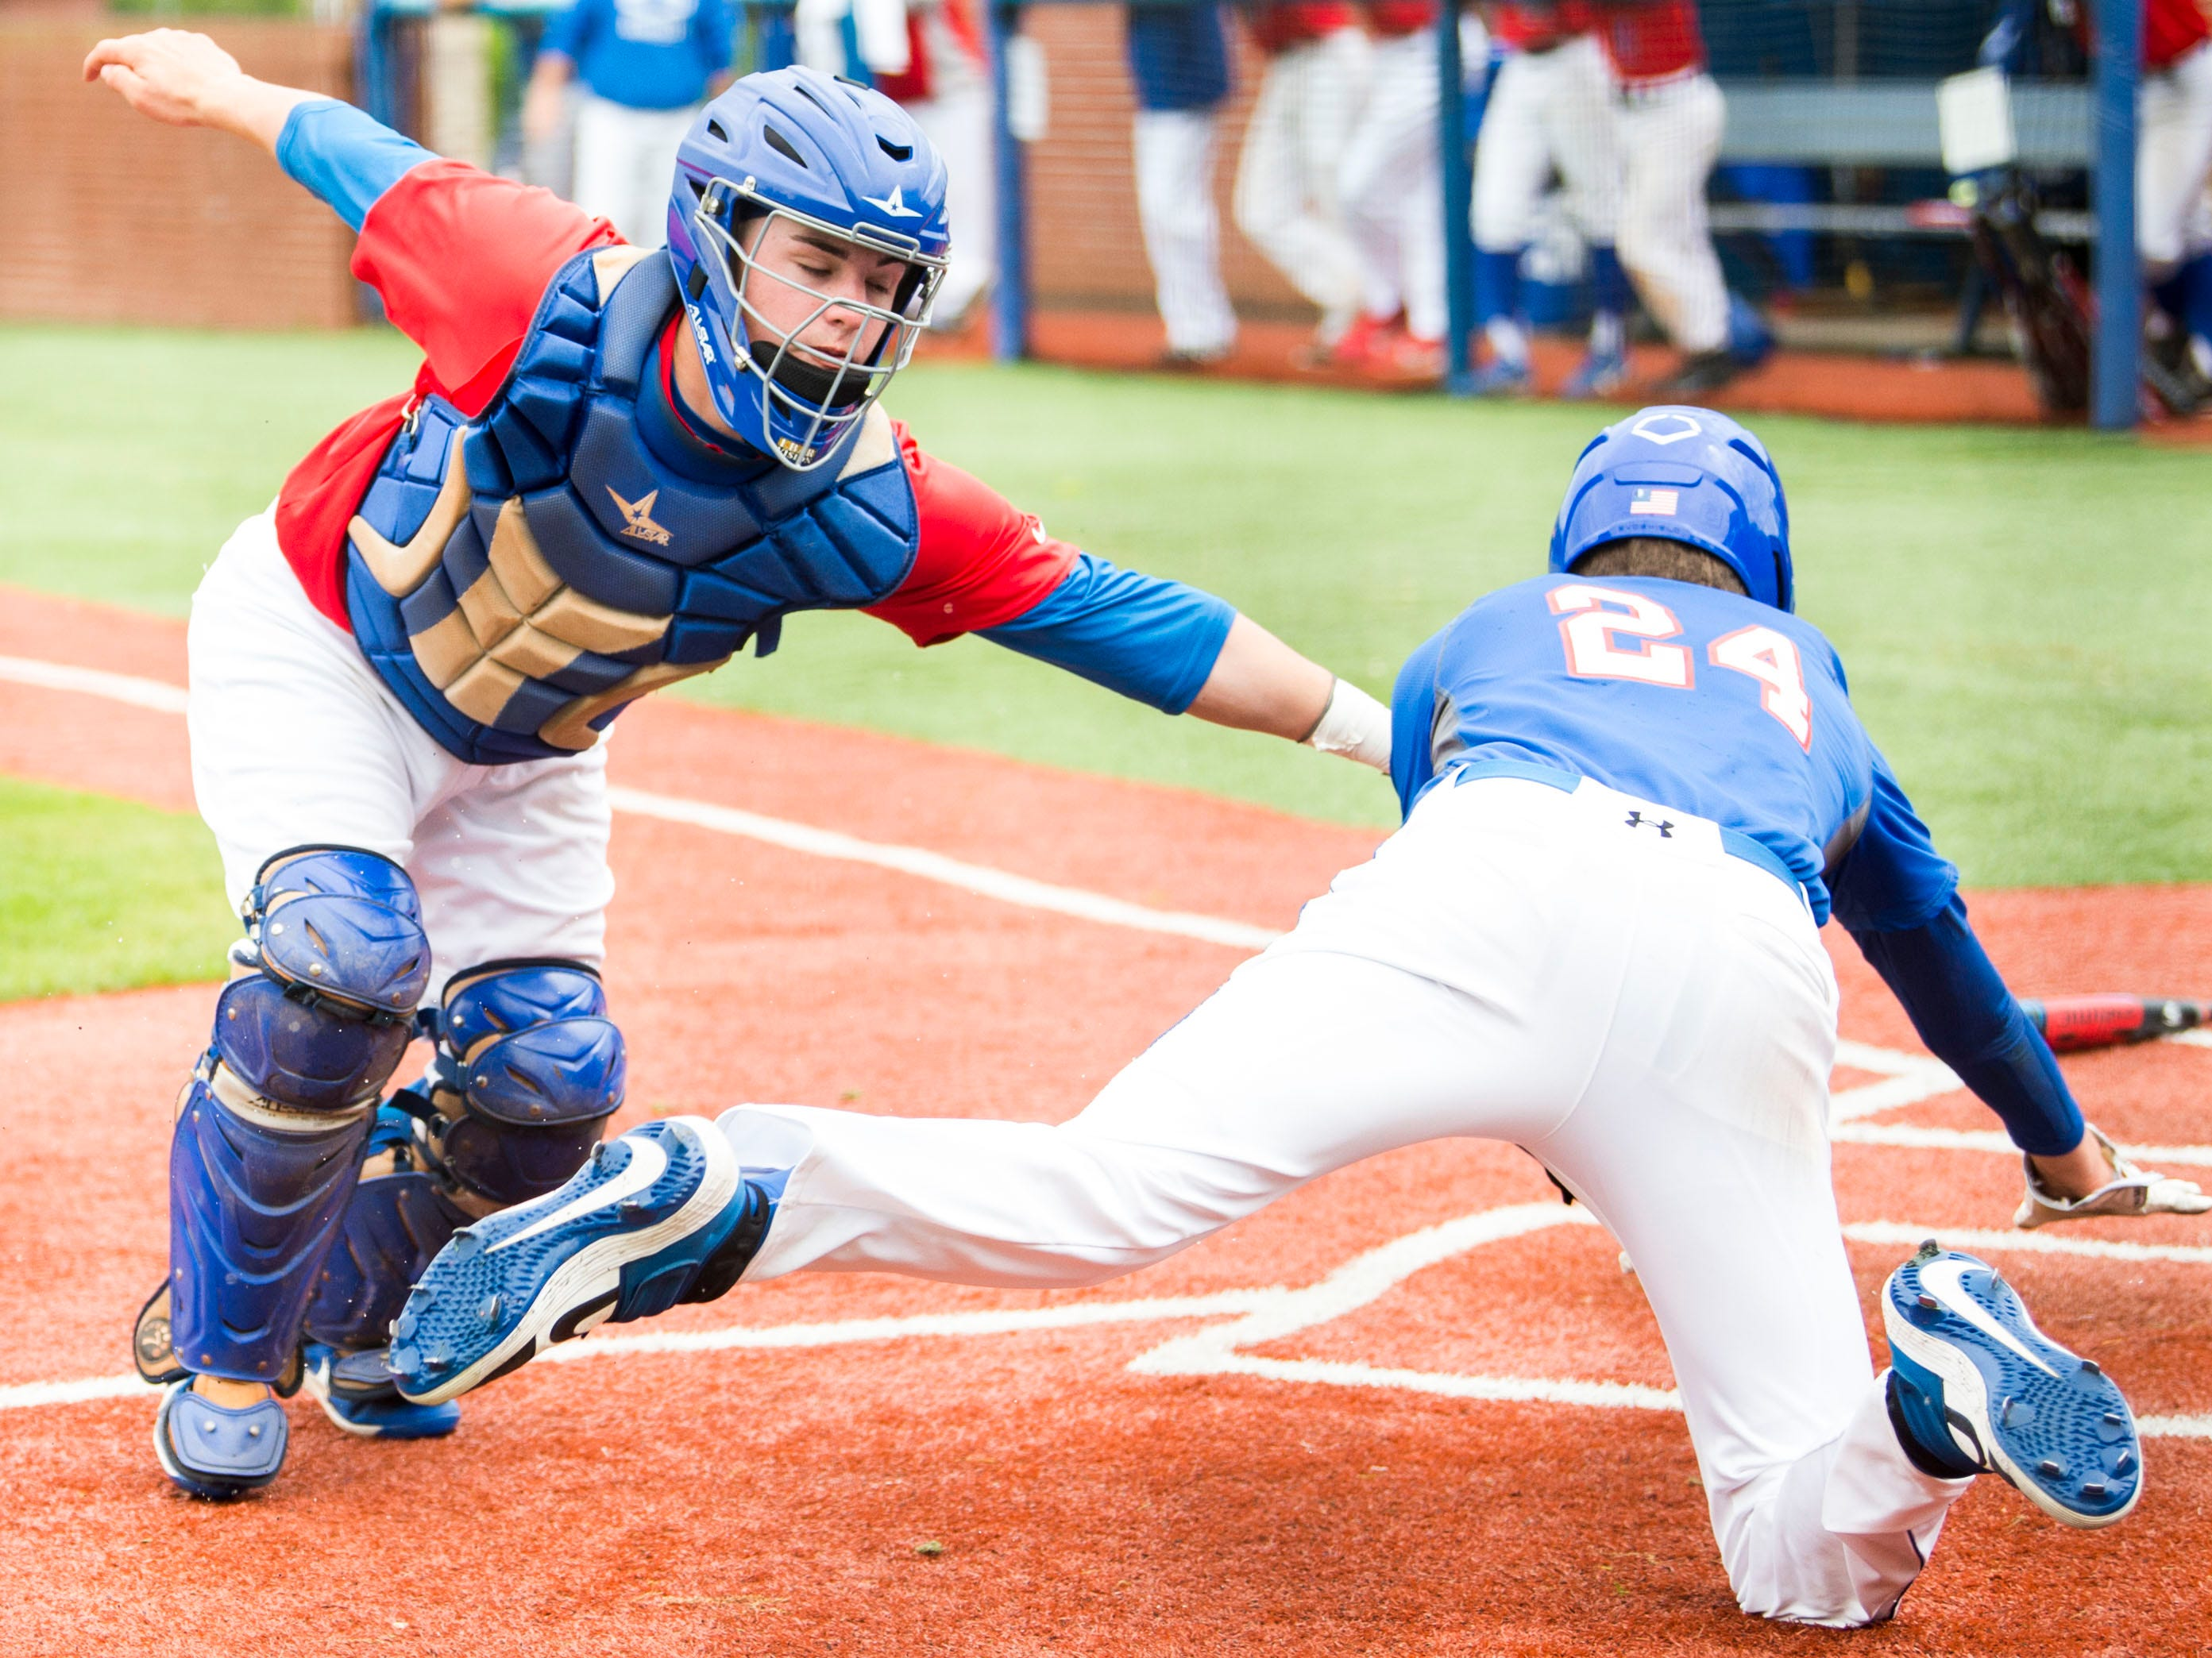 Bartlett's Jack Douglas (4) tags CAK's Cole Campbell (24) out at home during a baseball game between CAK and Bartlett held at CAK in Knoxville on Friday, April 29, 2019.